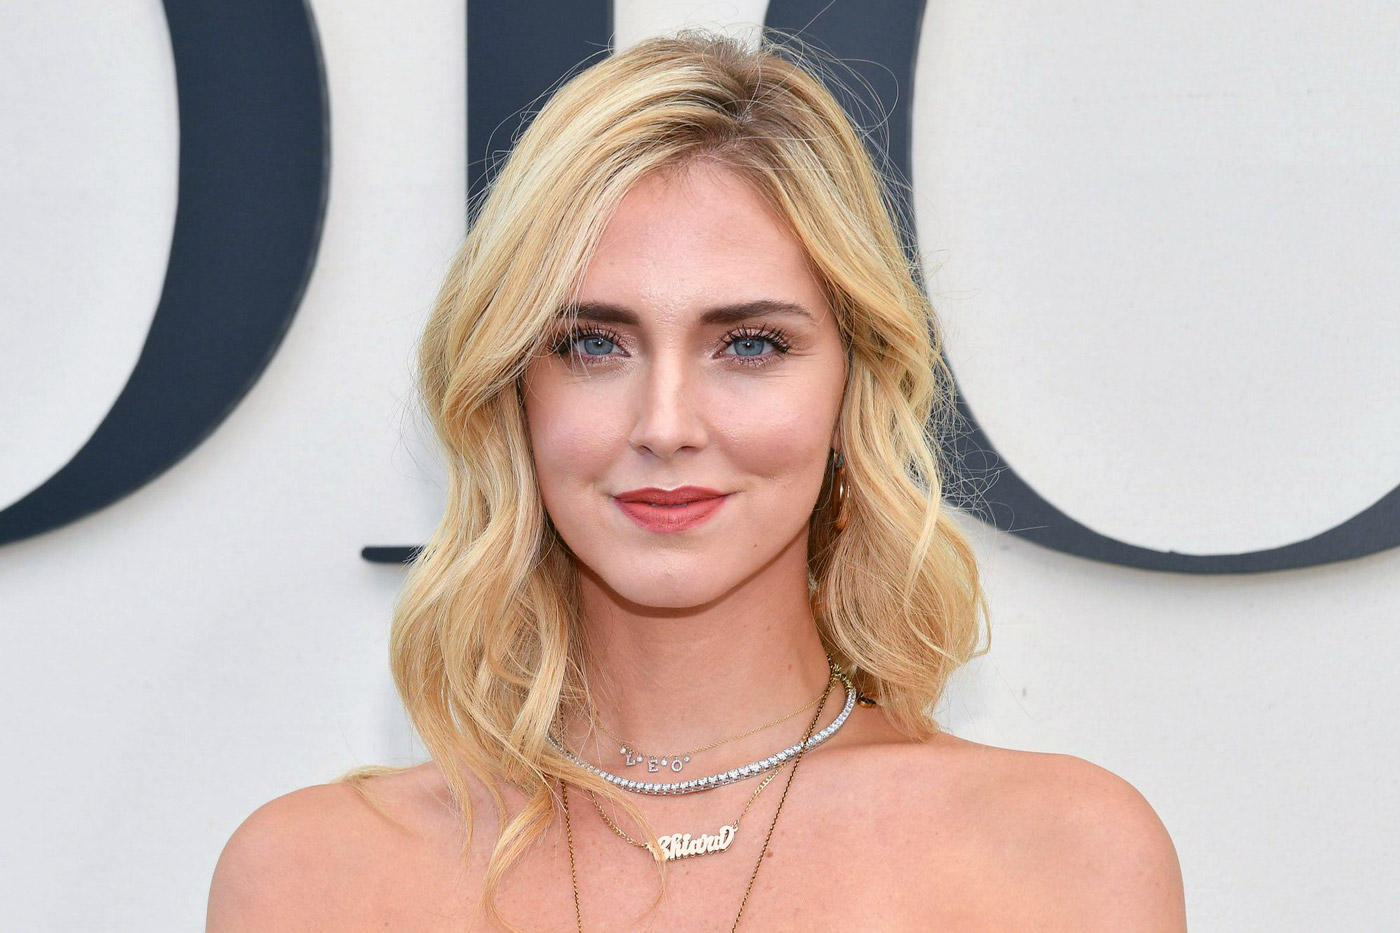 Chiara Ferragni nudes (73 fotos), photos Boobs, iCloud, cleavage 2018